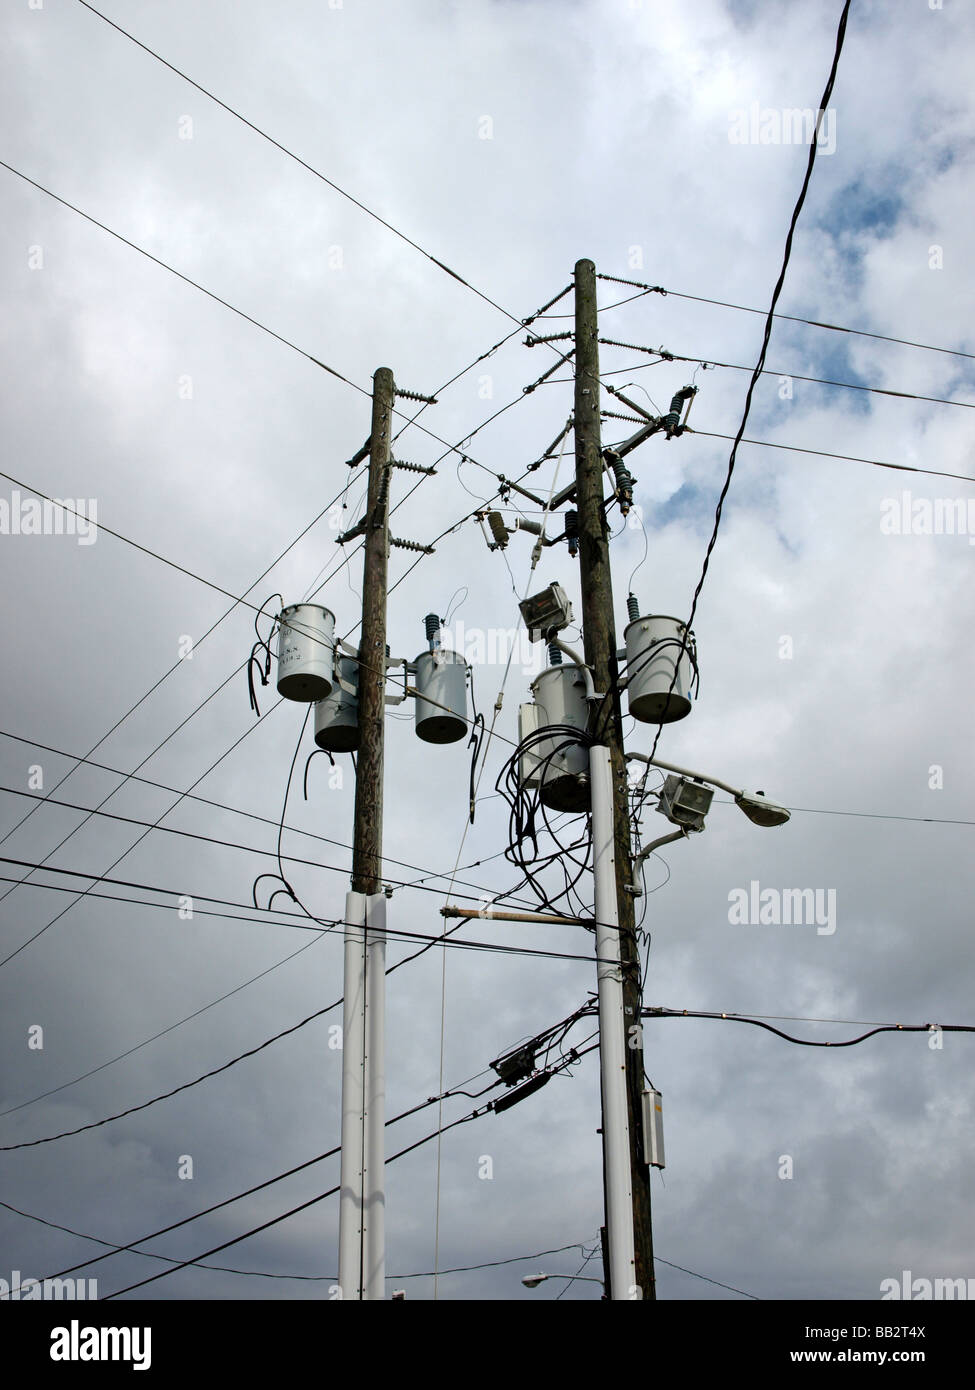 Light Pole Wiring - All Kind Of Wiring Diagrams •